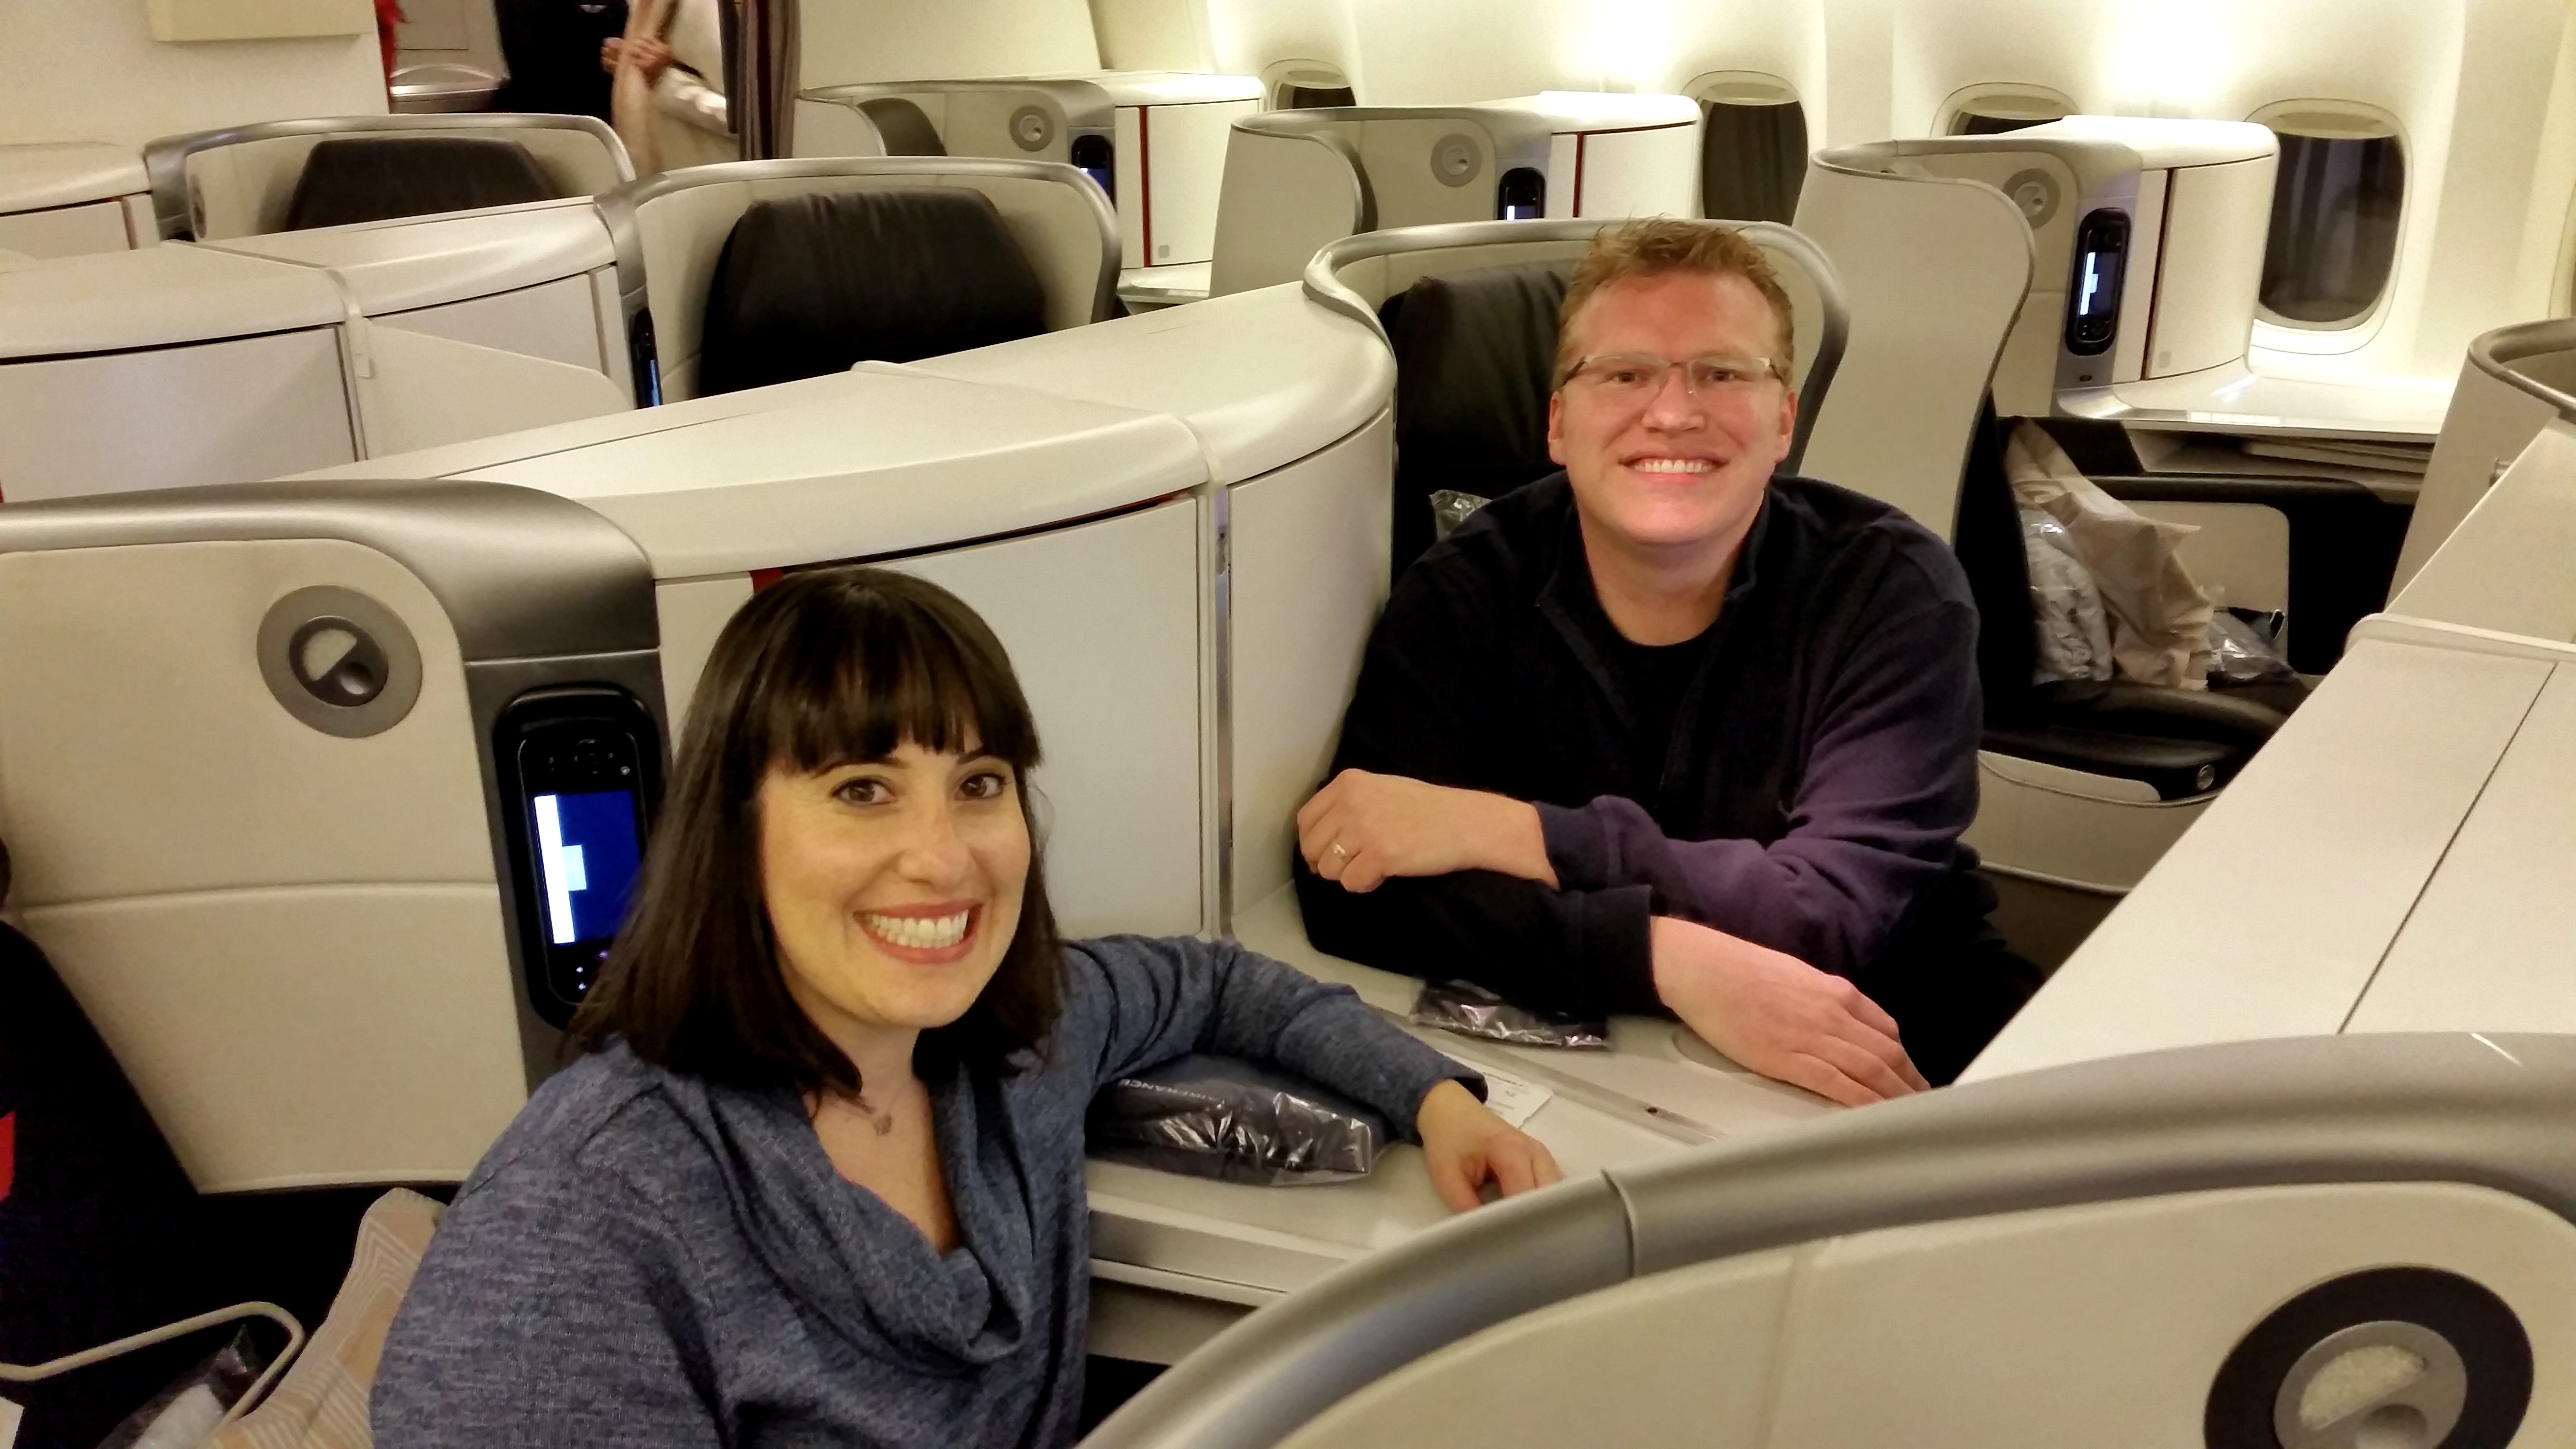 PointsLounge founder Chris Carley and his wife Randee sitting in business class on an Air France 777.